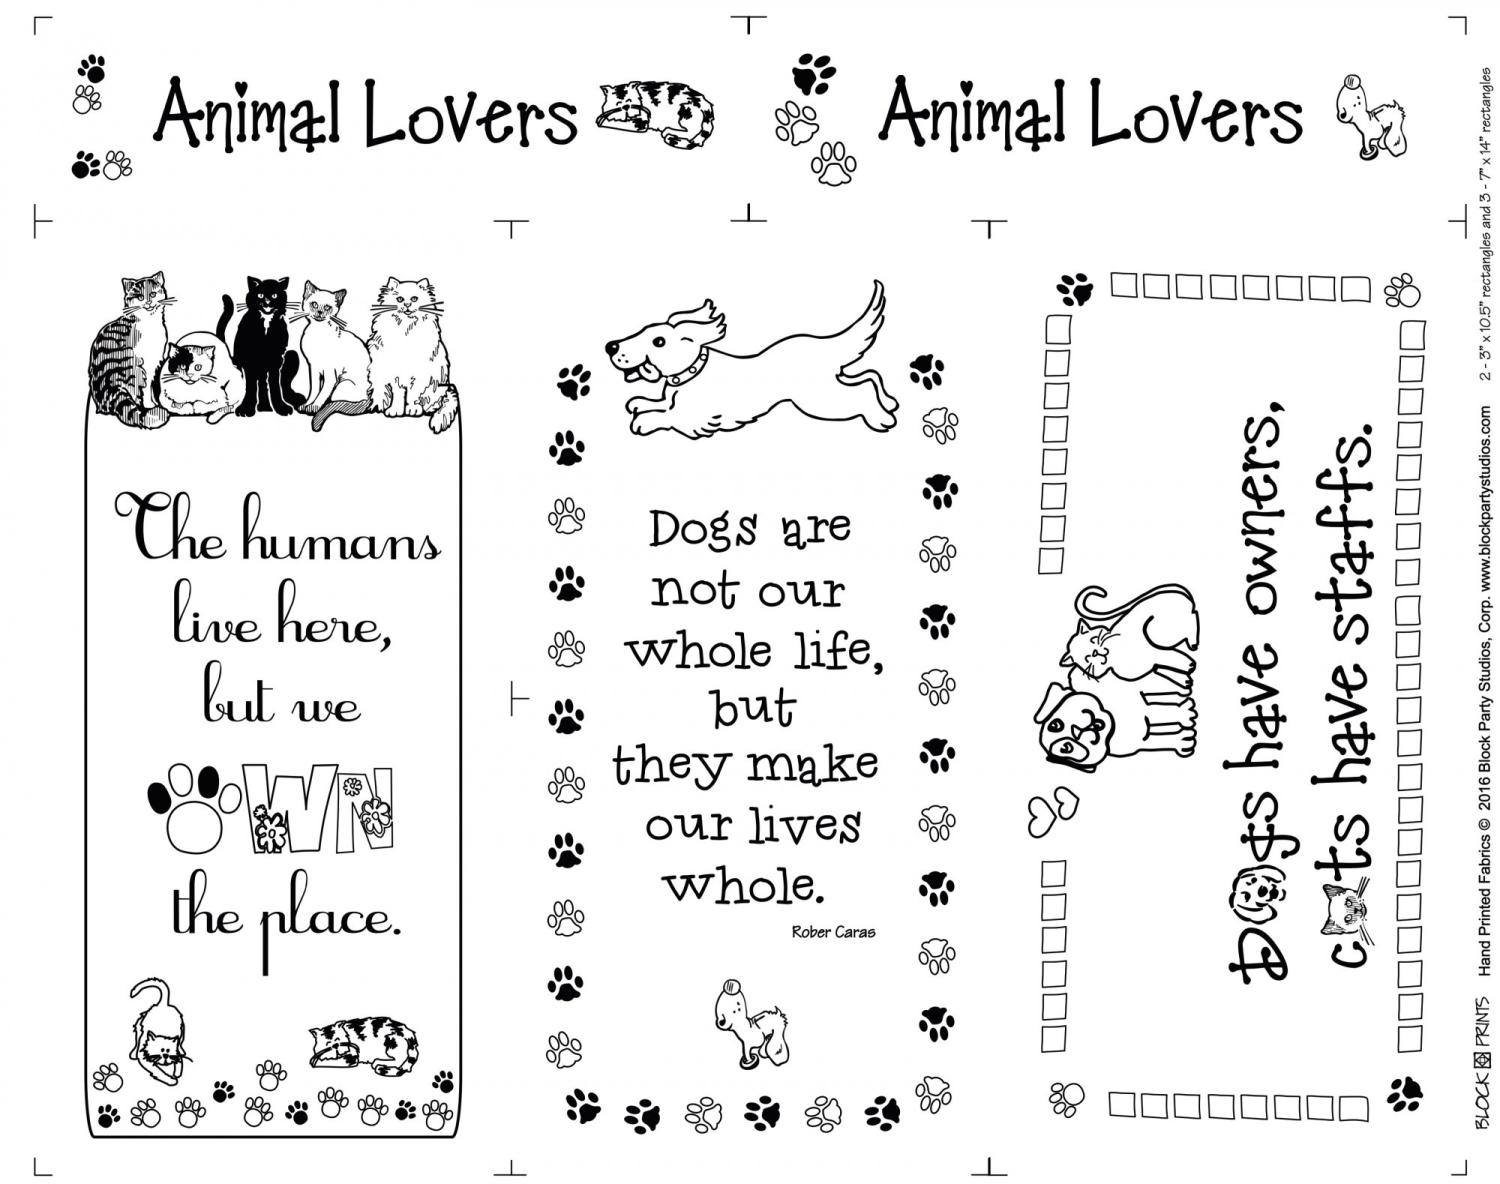 Animal Lover Panel white by Block Party Studios (715BW)